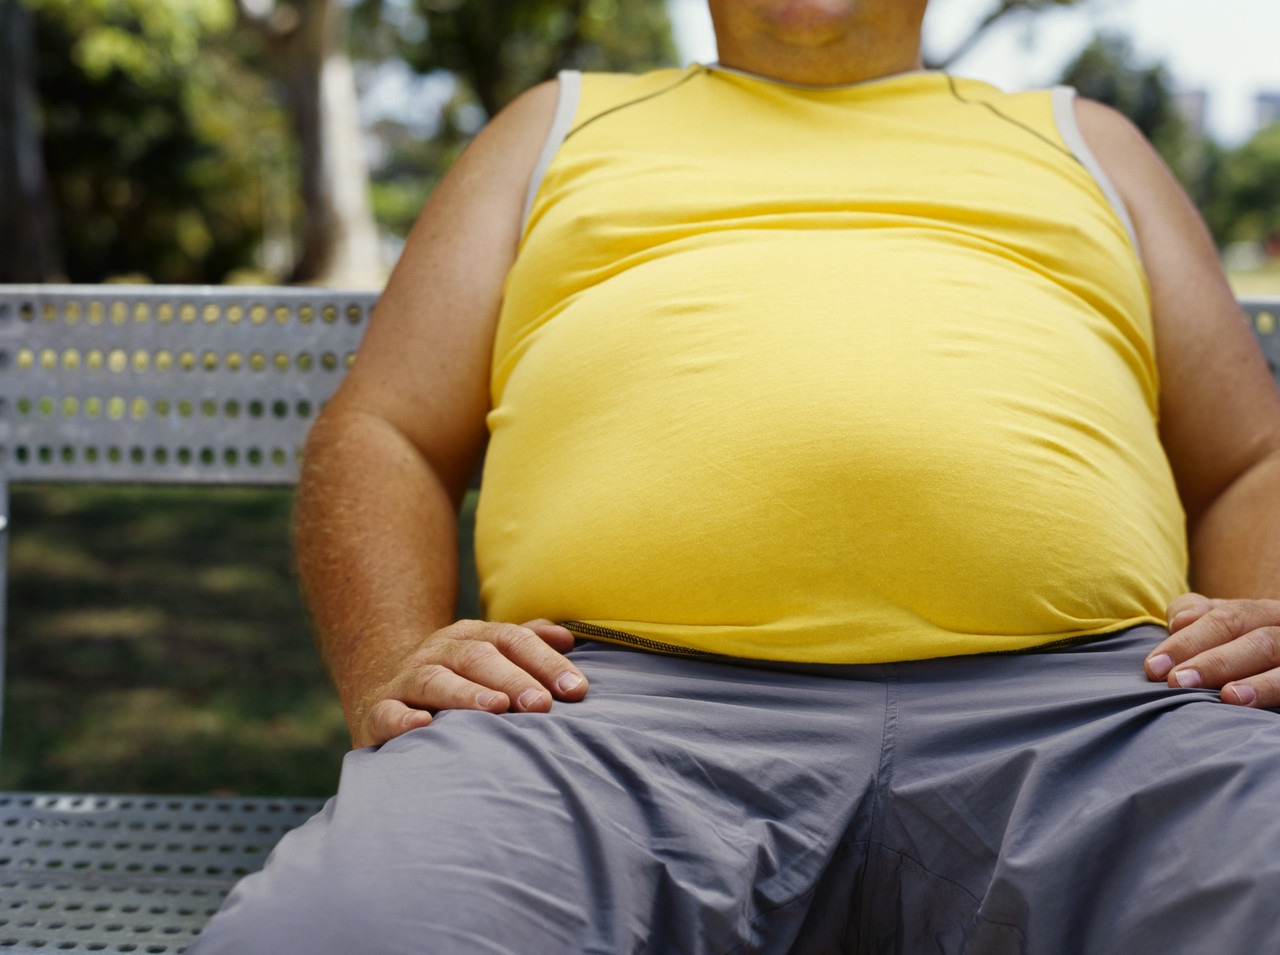 Obesity not healthy for man sitting on bench